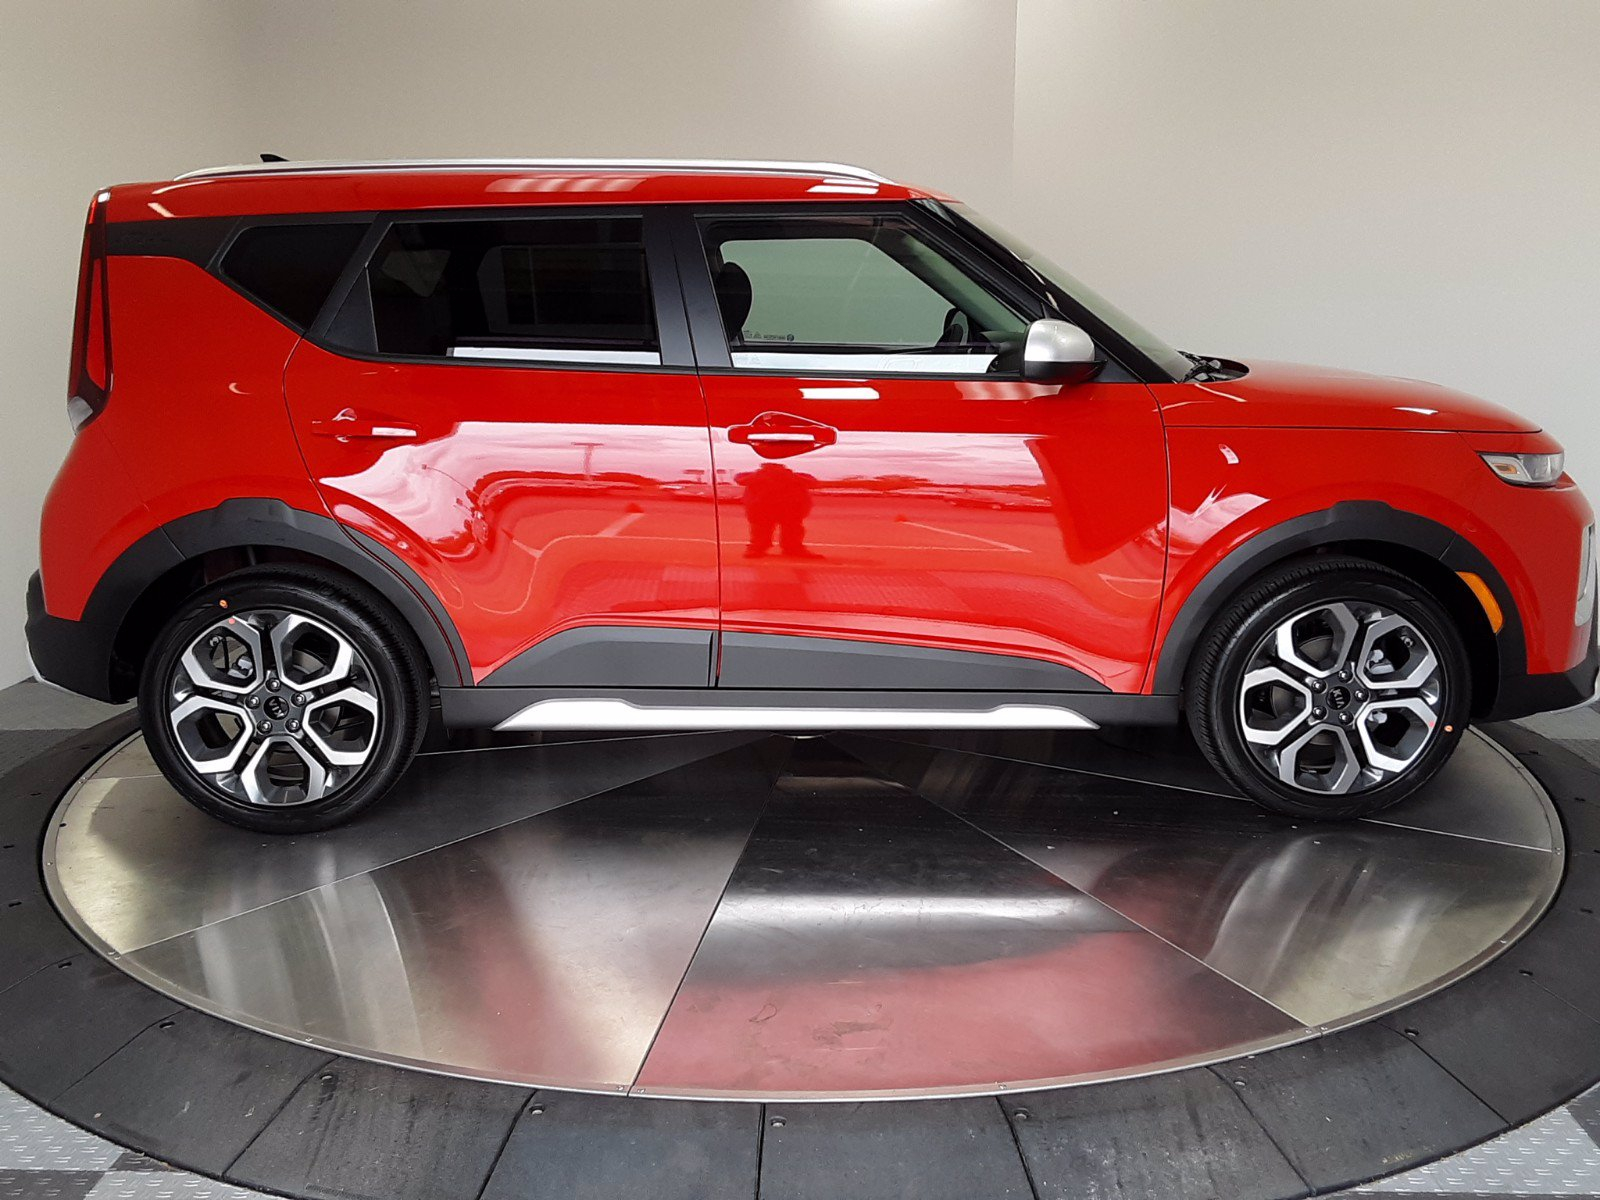 2021 Kia Soul Brochure Price, Towing Capacity, Safety ...